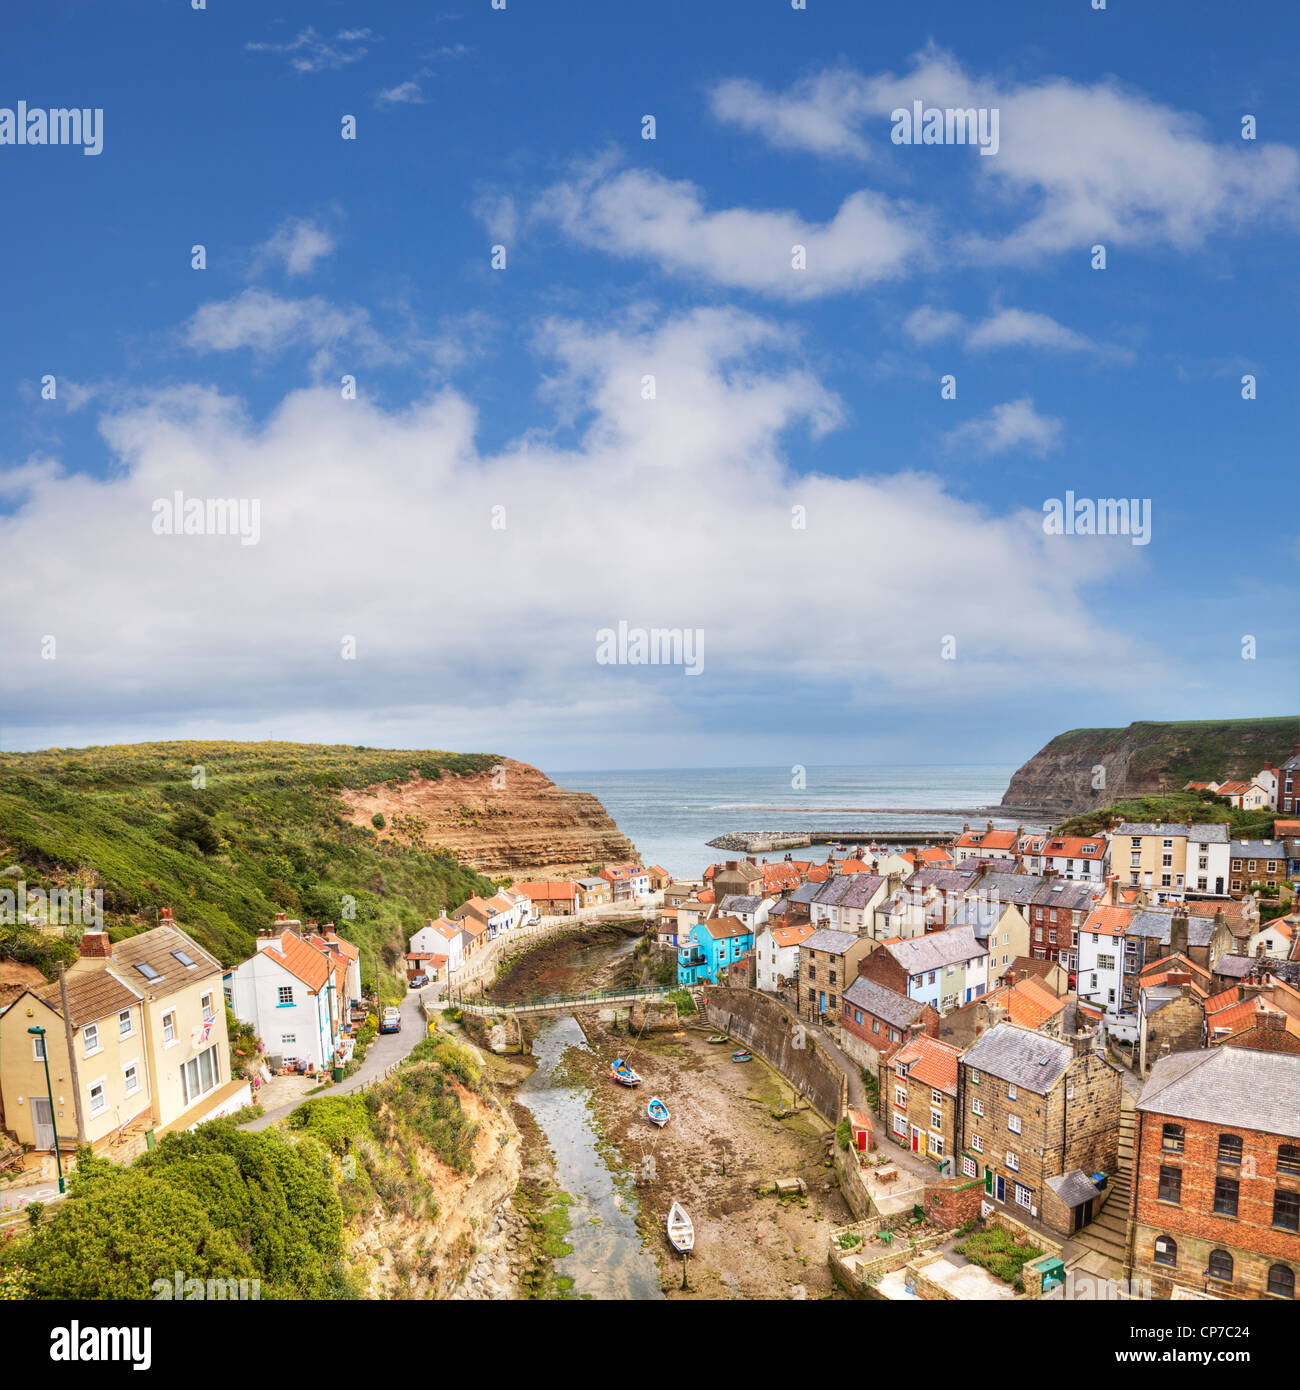 The tiny fishing village of Staithes and the Roxby Beck on the North Yorkshire coast, England - Stock Image